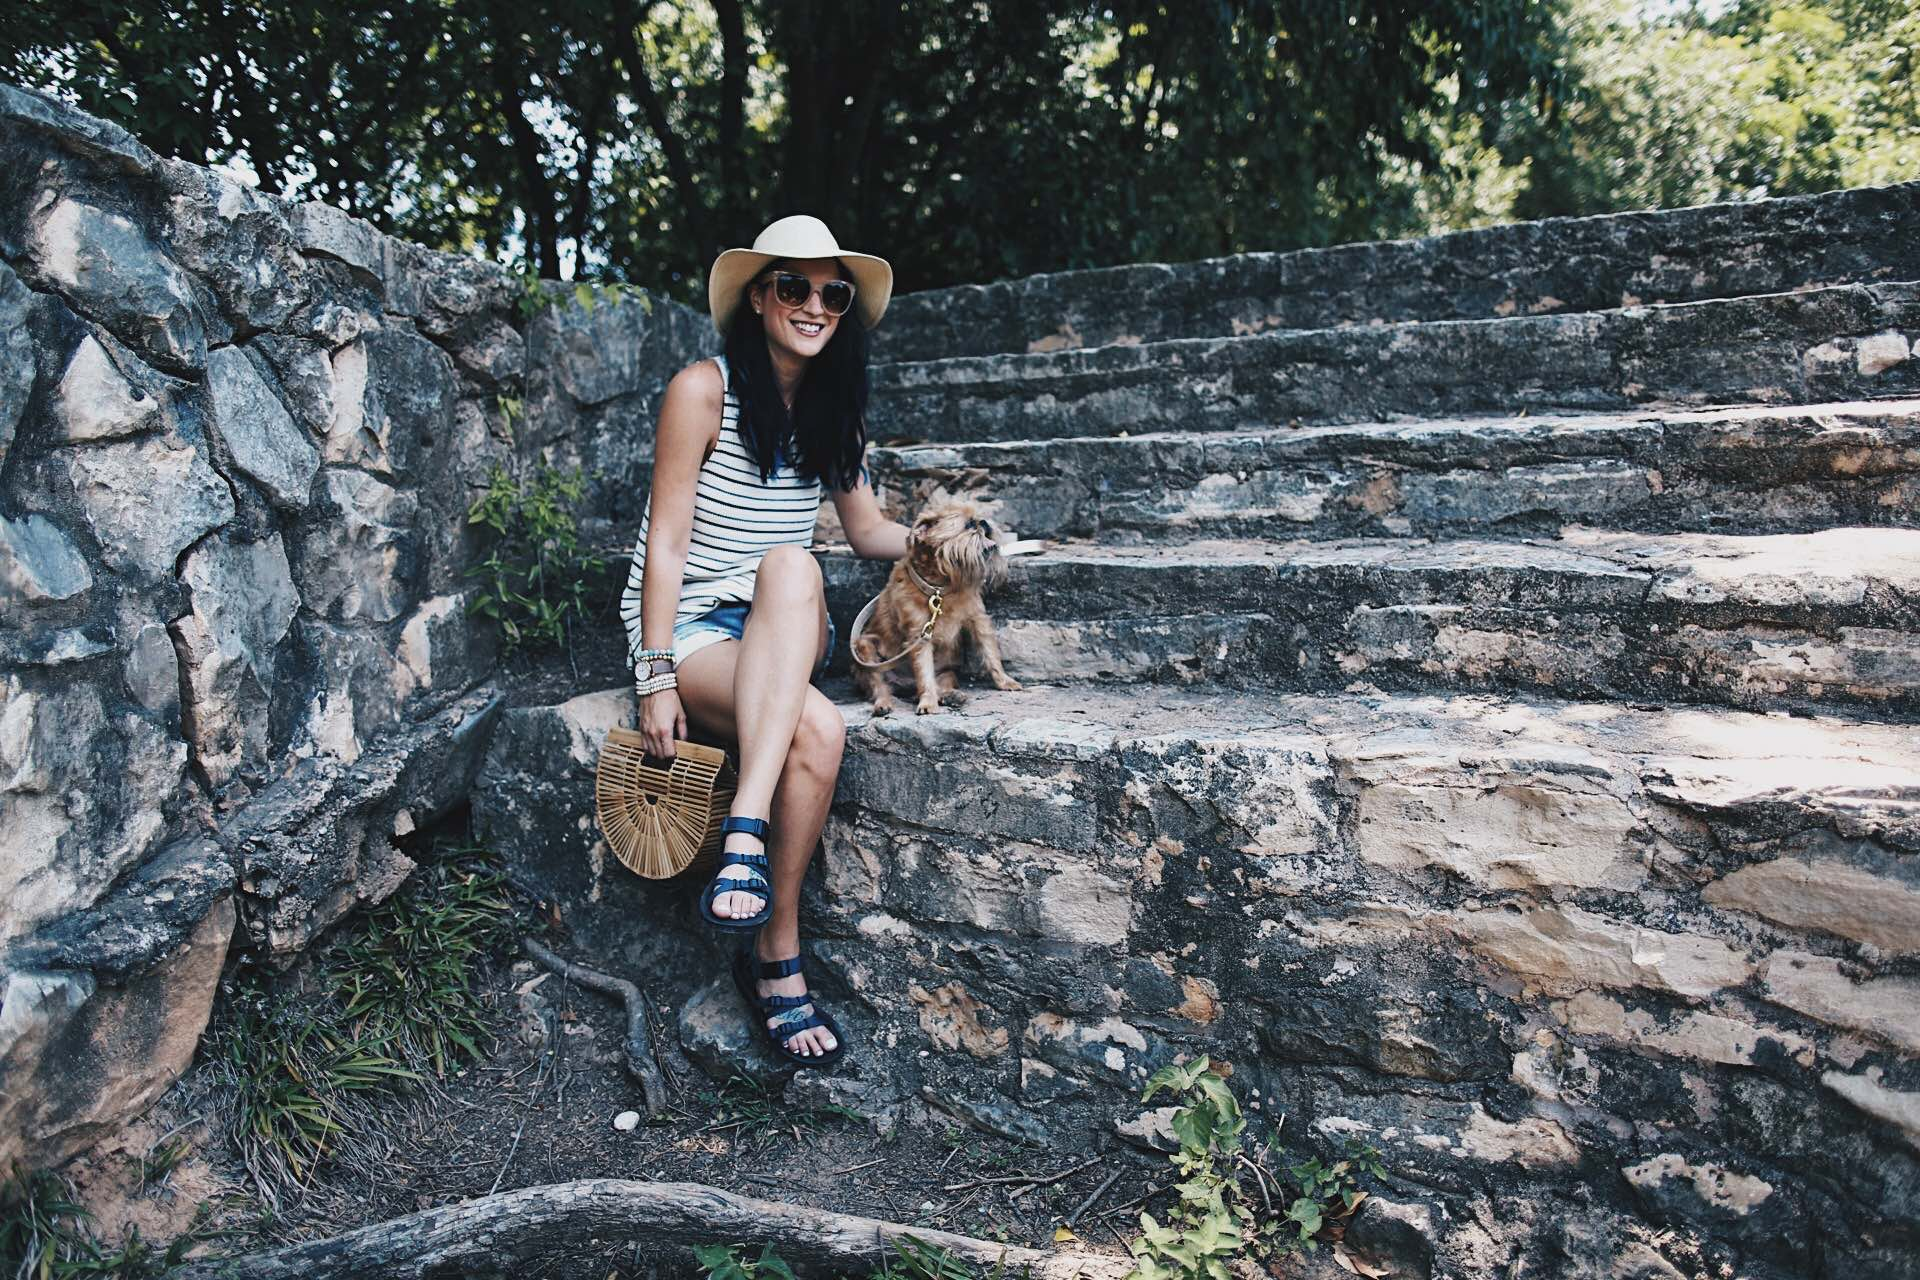 DTKAustin shares which Teva Sandals are her go-to for exploring Austin and why she will only buy them from Zappos. | how to style teva sandals | how to wear teva sandals | teva sandals style tips | summer fashion tips | summer outfit ideas | summer style tips | what to wear for summer | warm weather fashion | fashion for summer | style tips for summer | outfit ideas for summer || Dressed to Kill